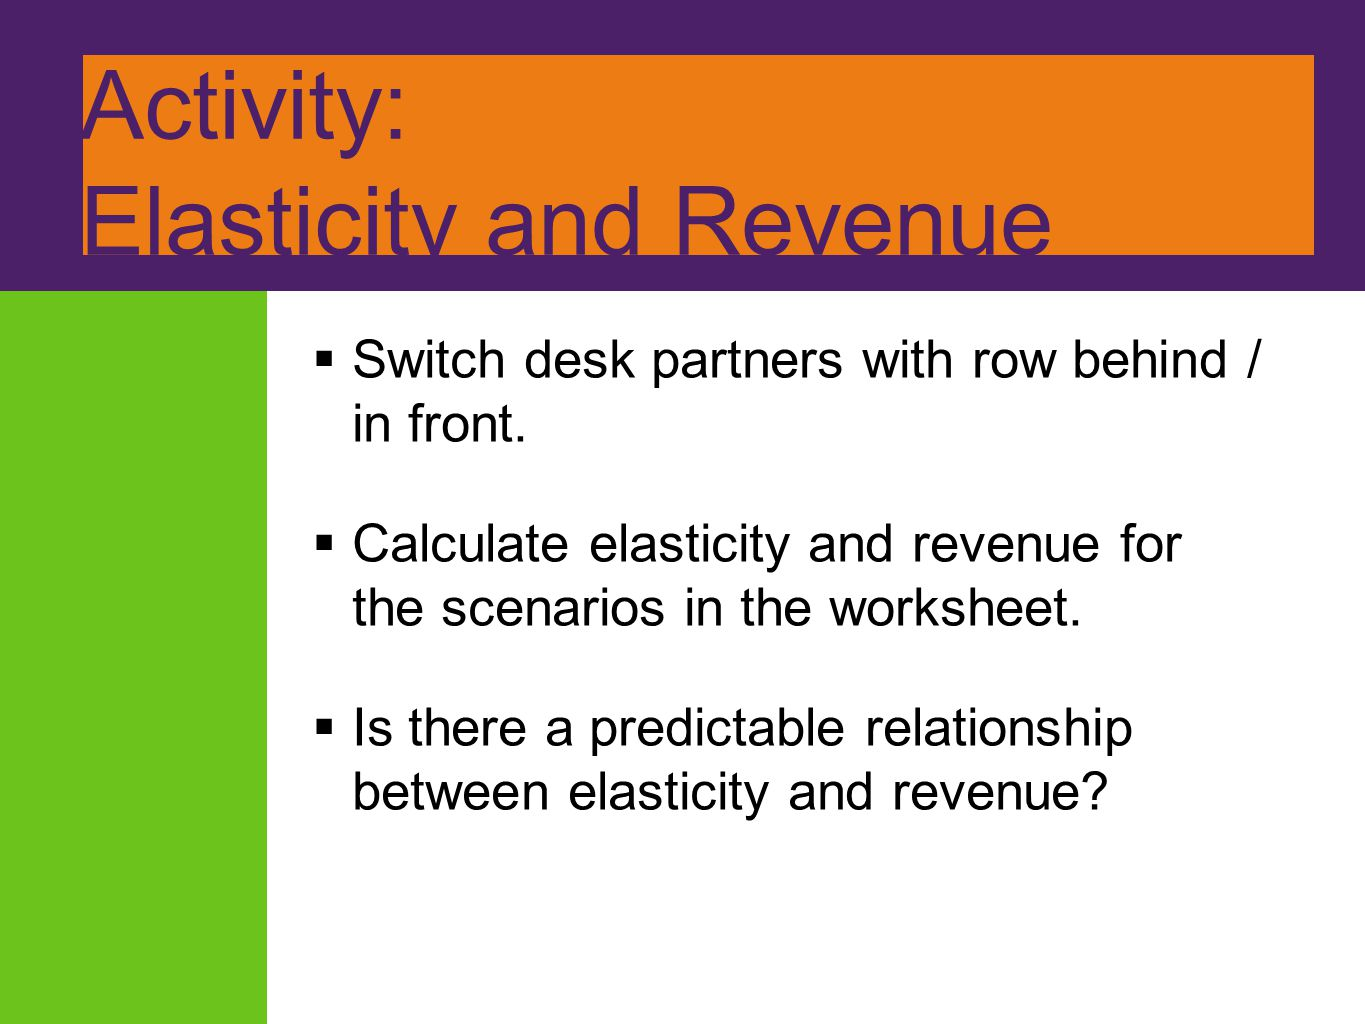 Activity: Elasticity and Revenue